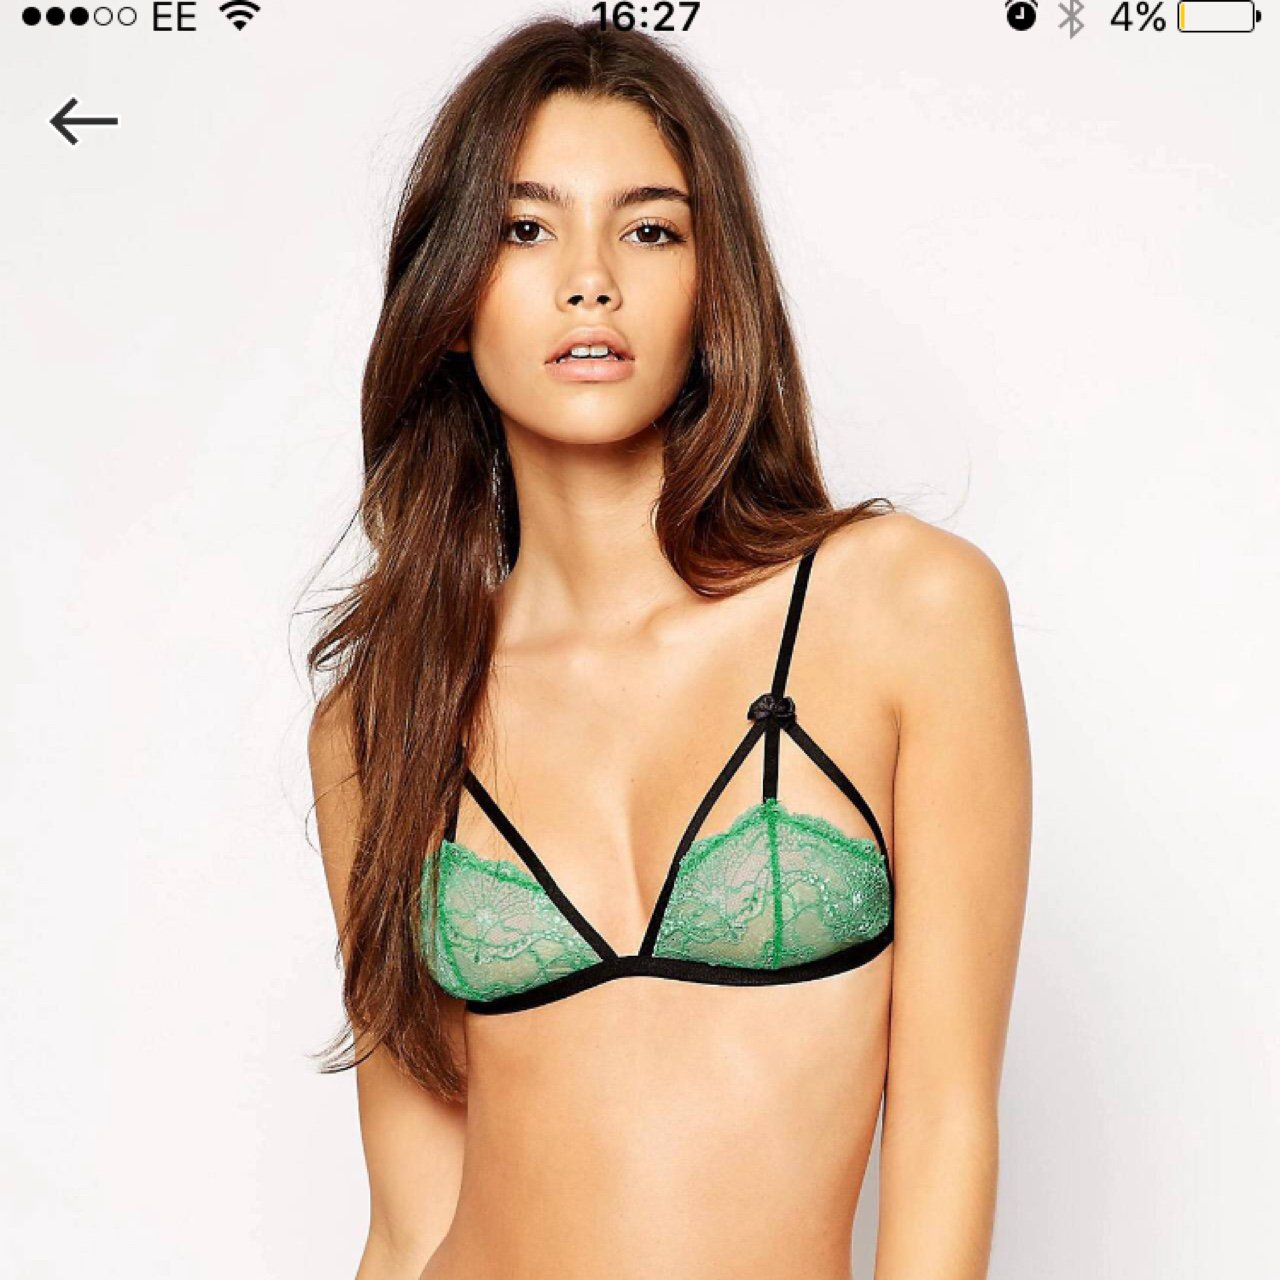 1ca29eee32 Asos green lace bra. Size small. Msg me for details.  asos - Depop